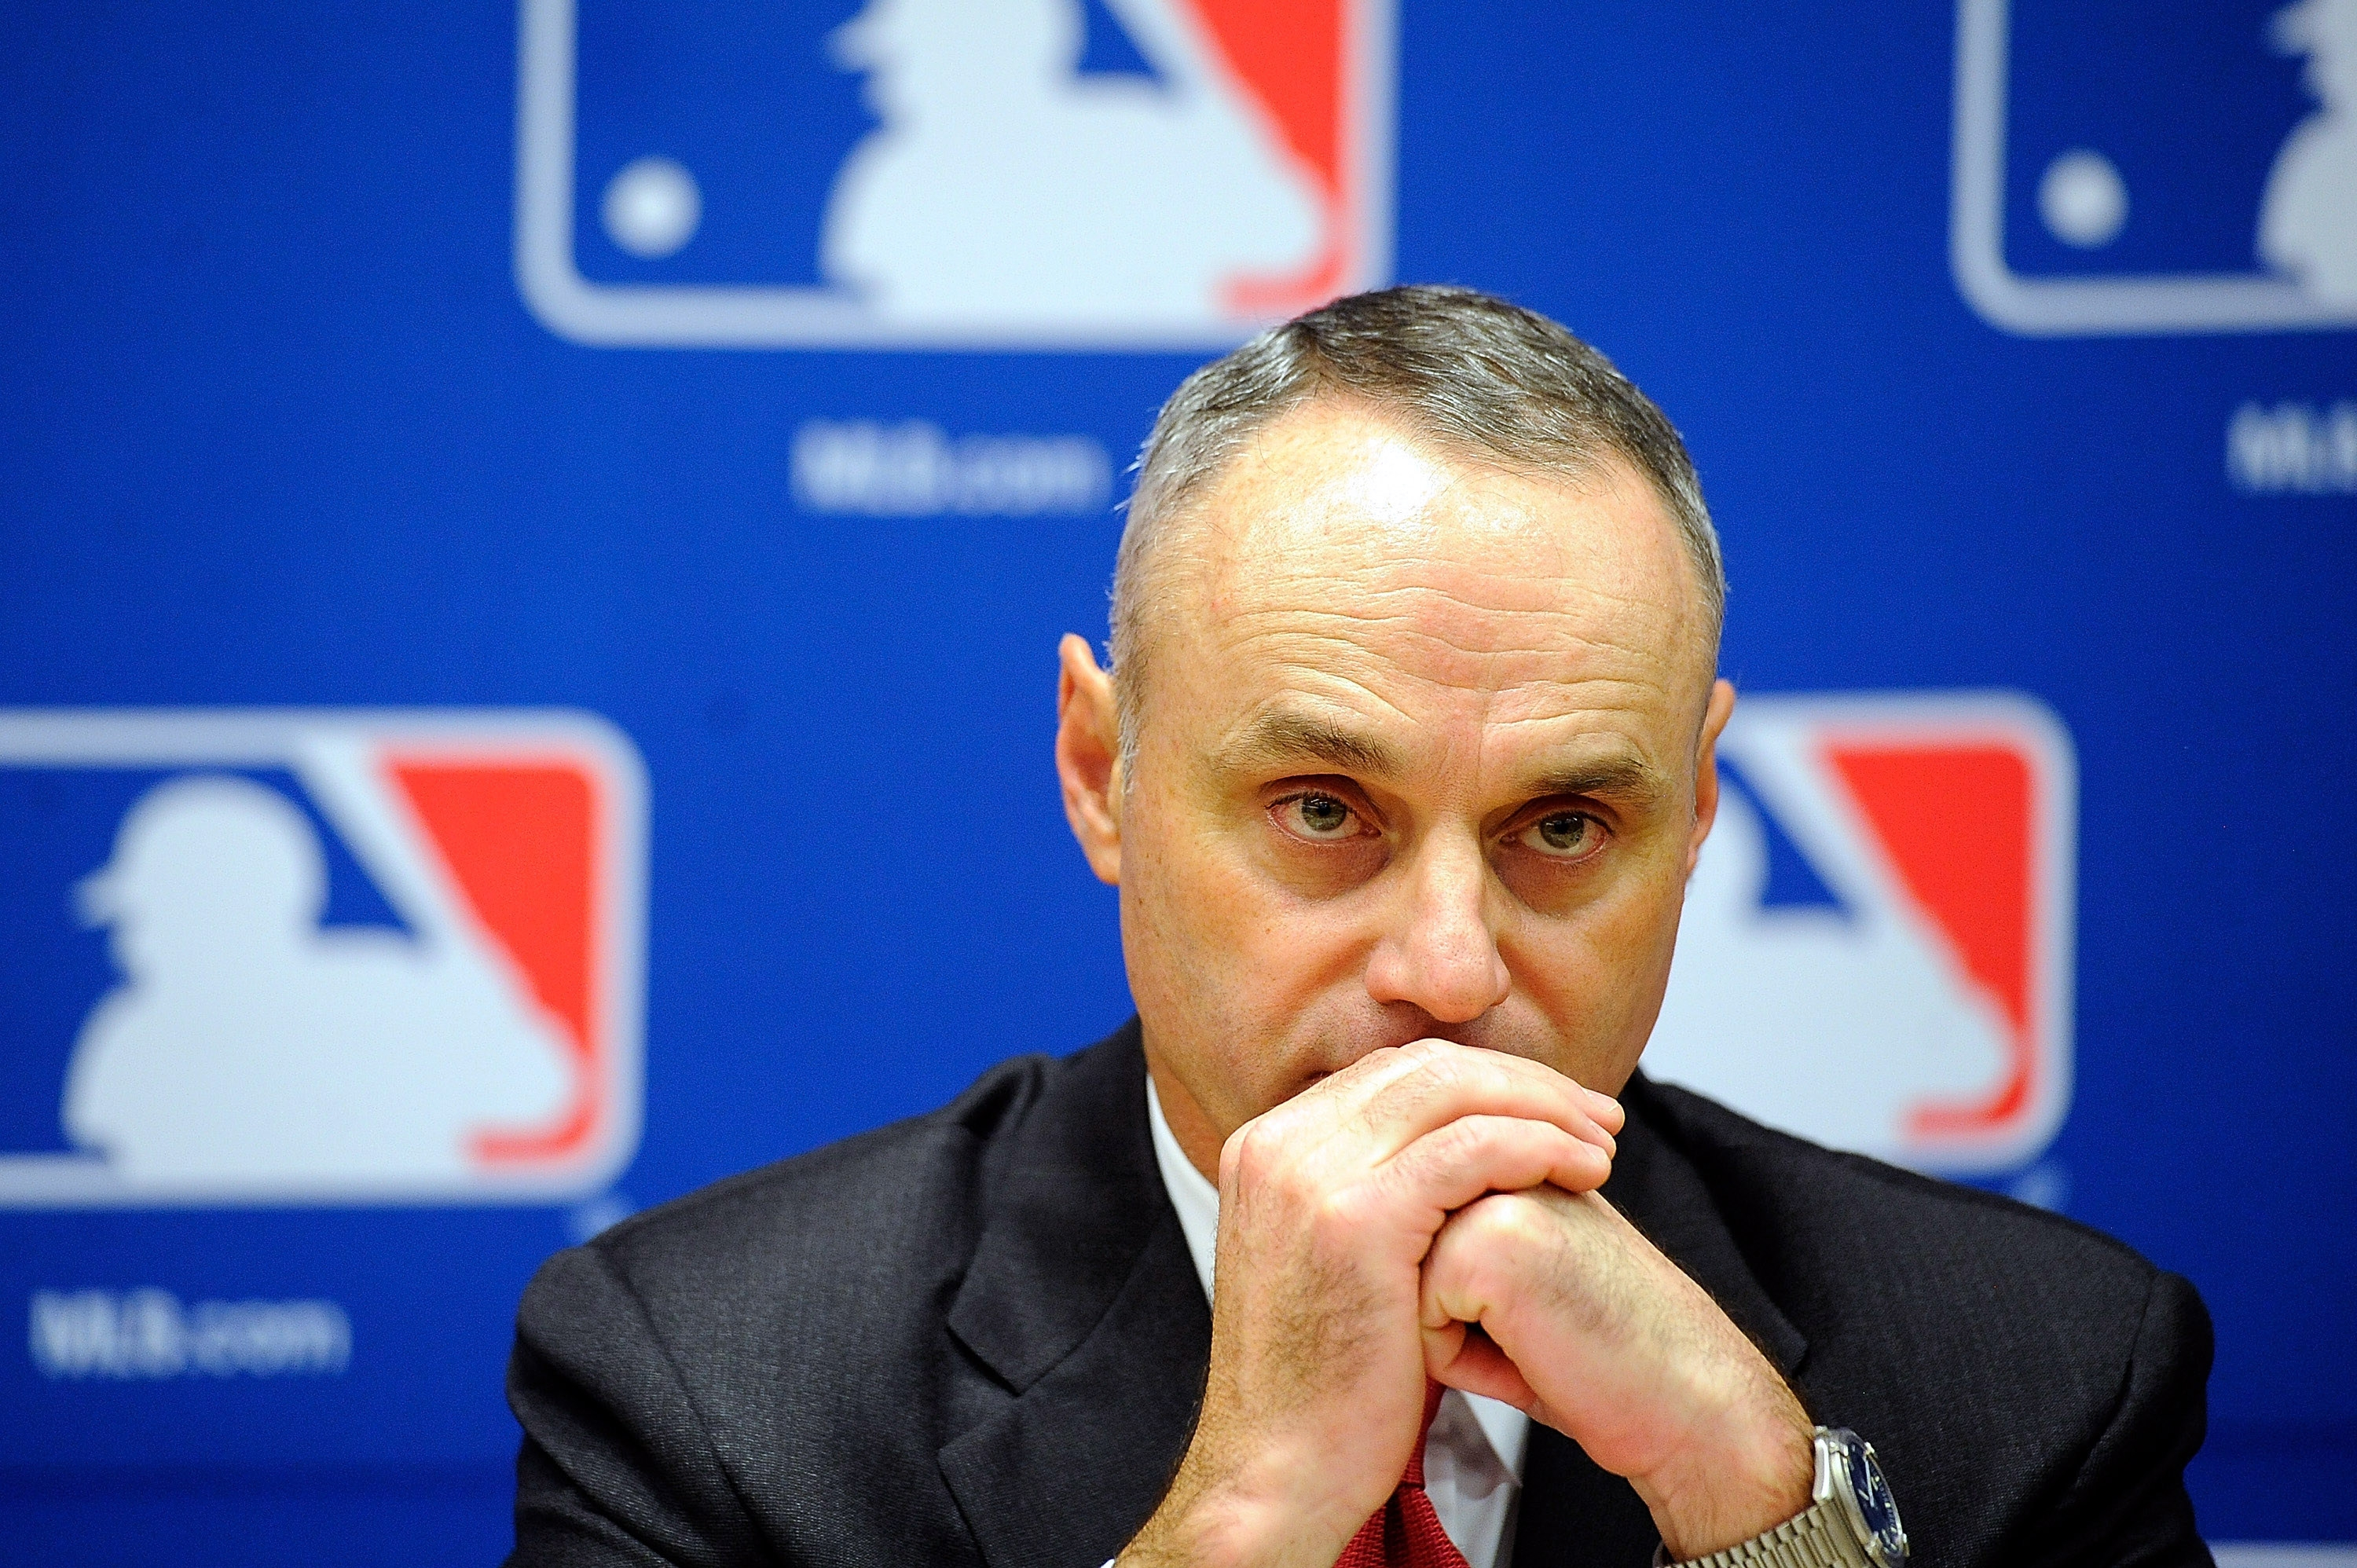 Major League Baseball executive Rob Manfred has been elected to succeed Bud Selig as commissioner.